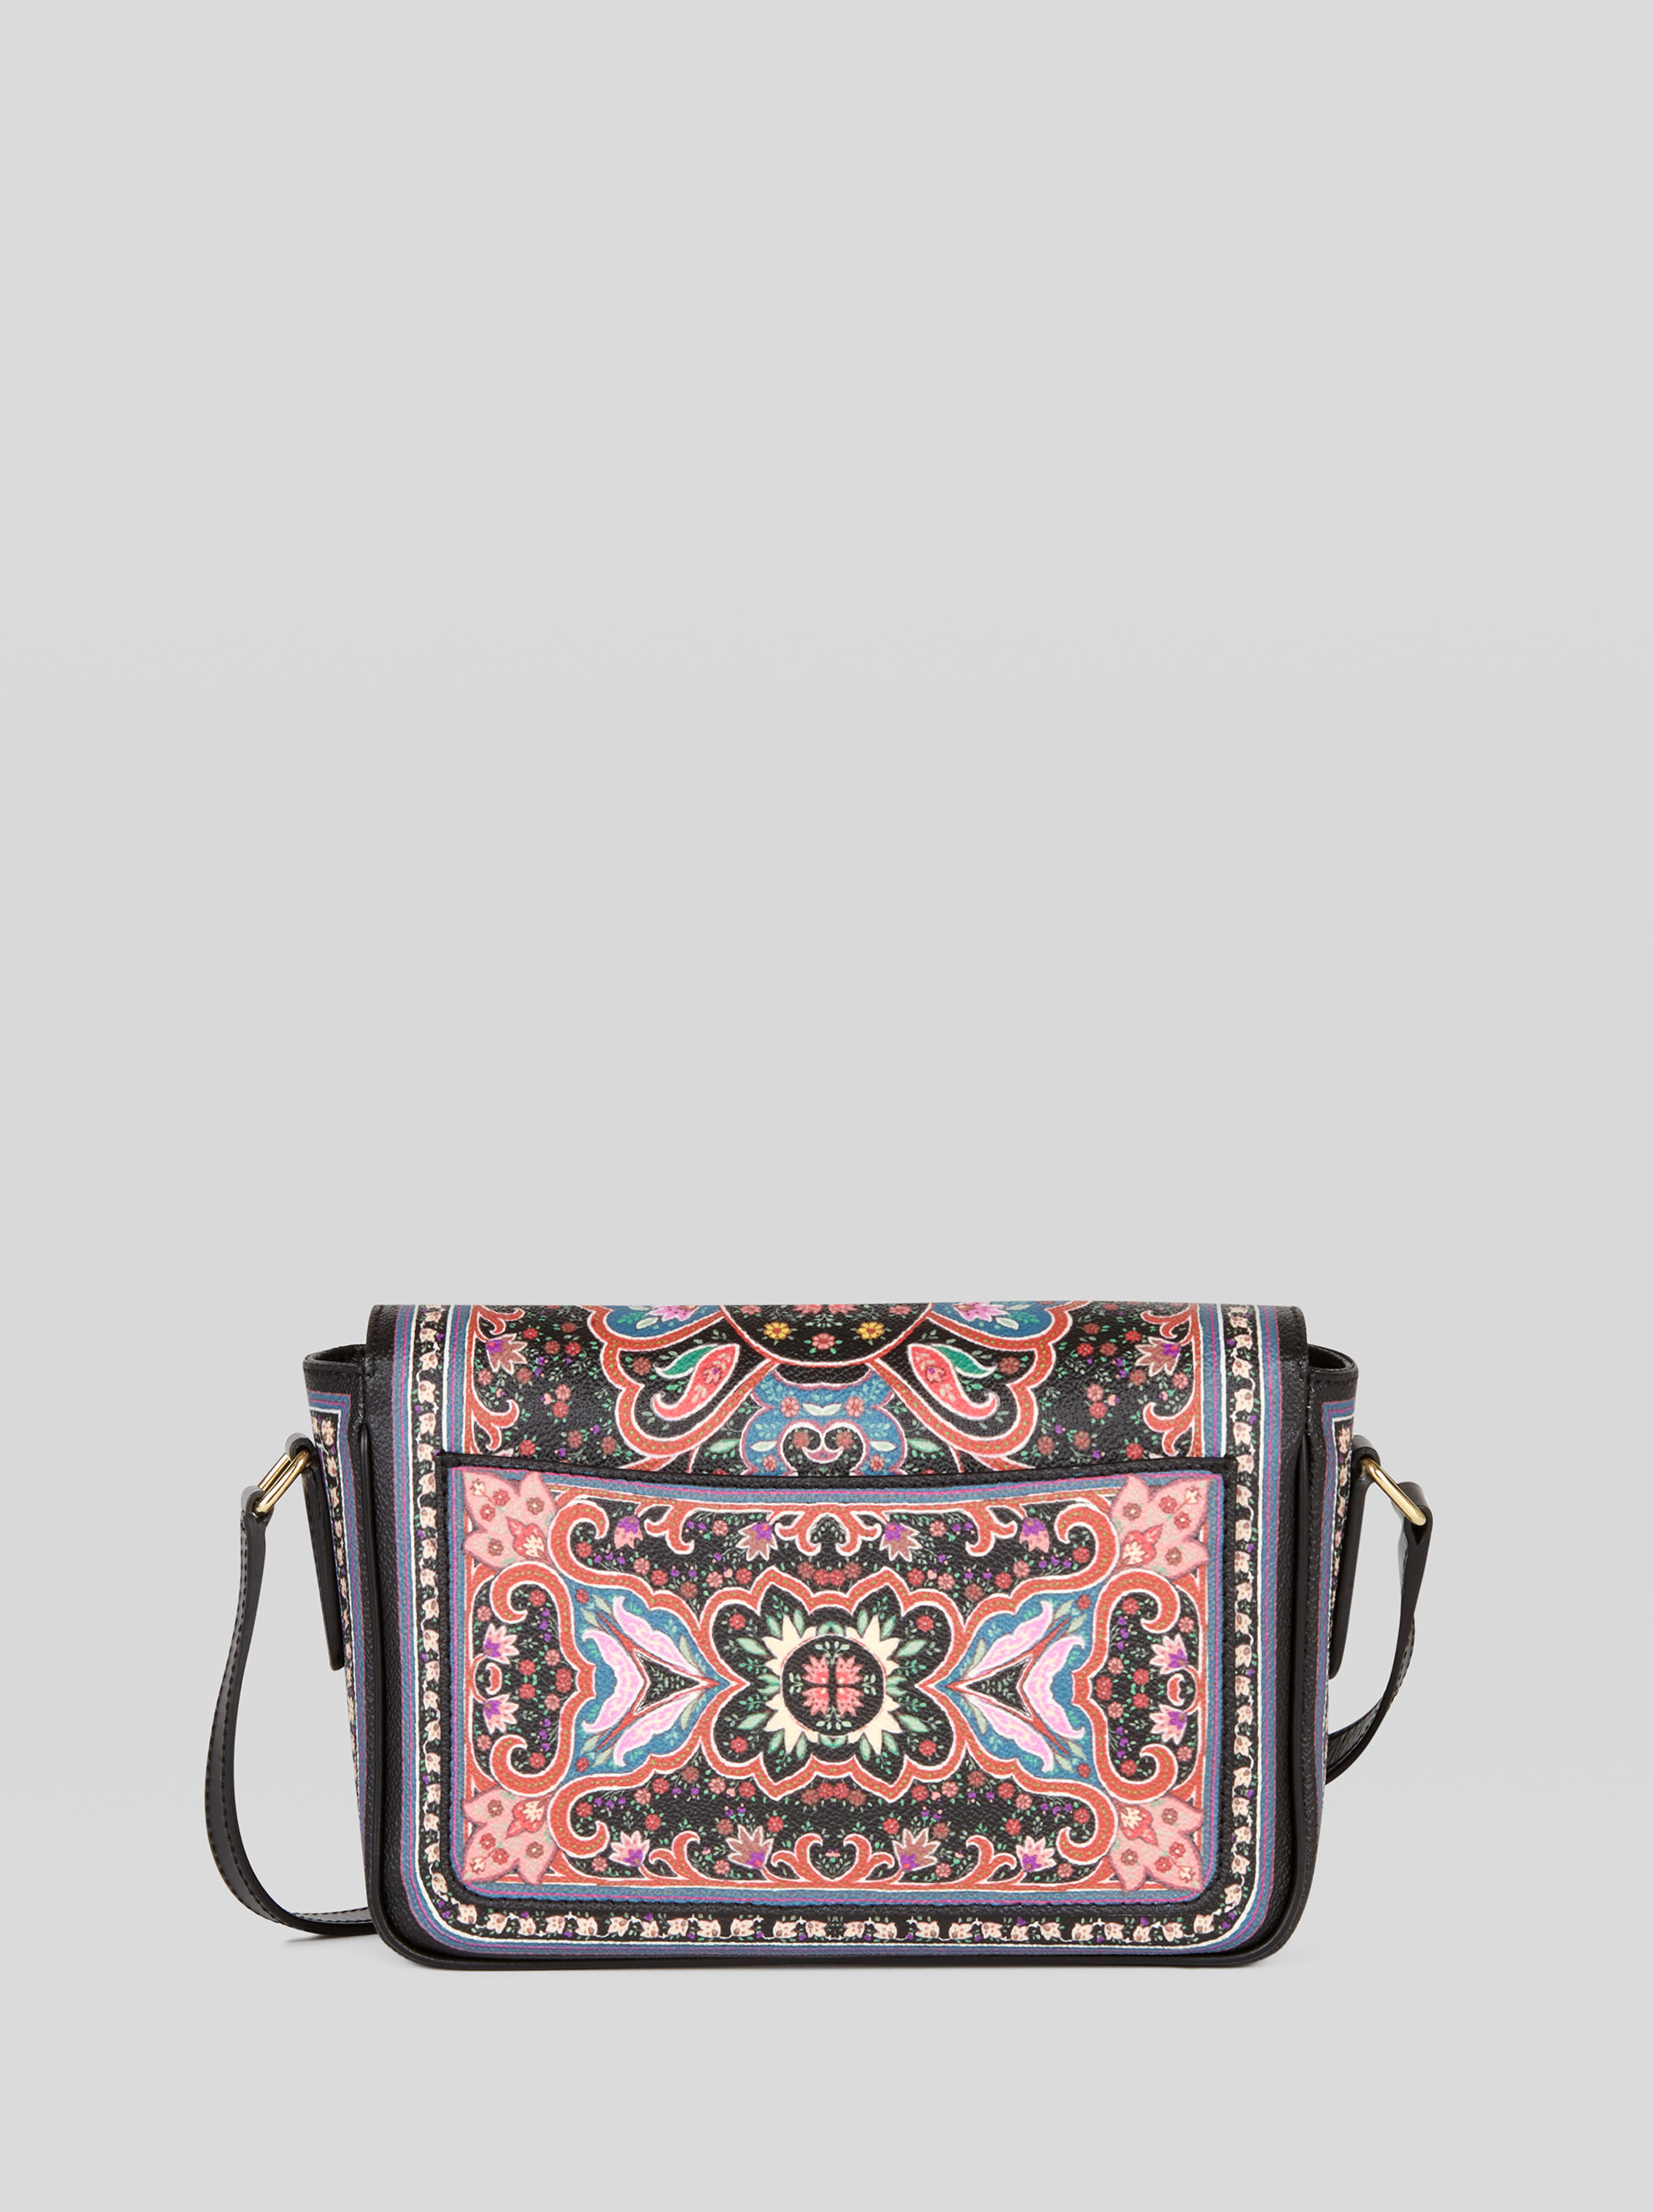 CROSSBODY BAG WITH FLORAL PATTERNS